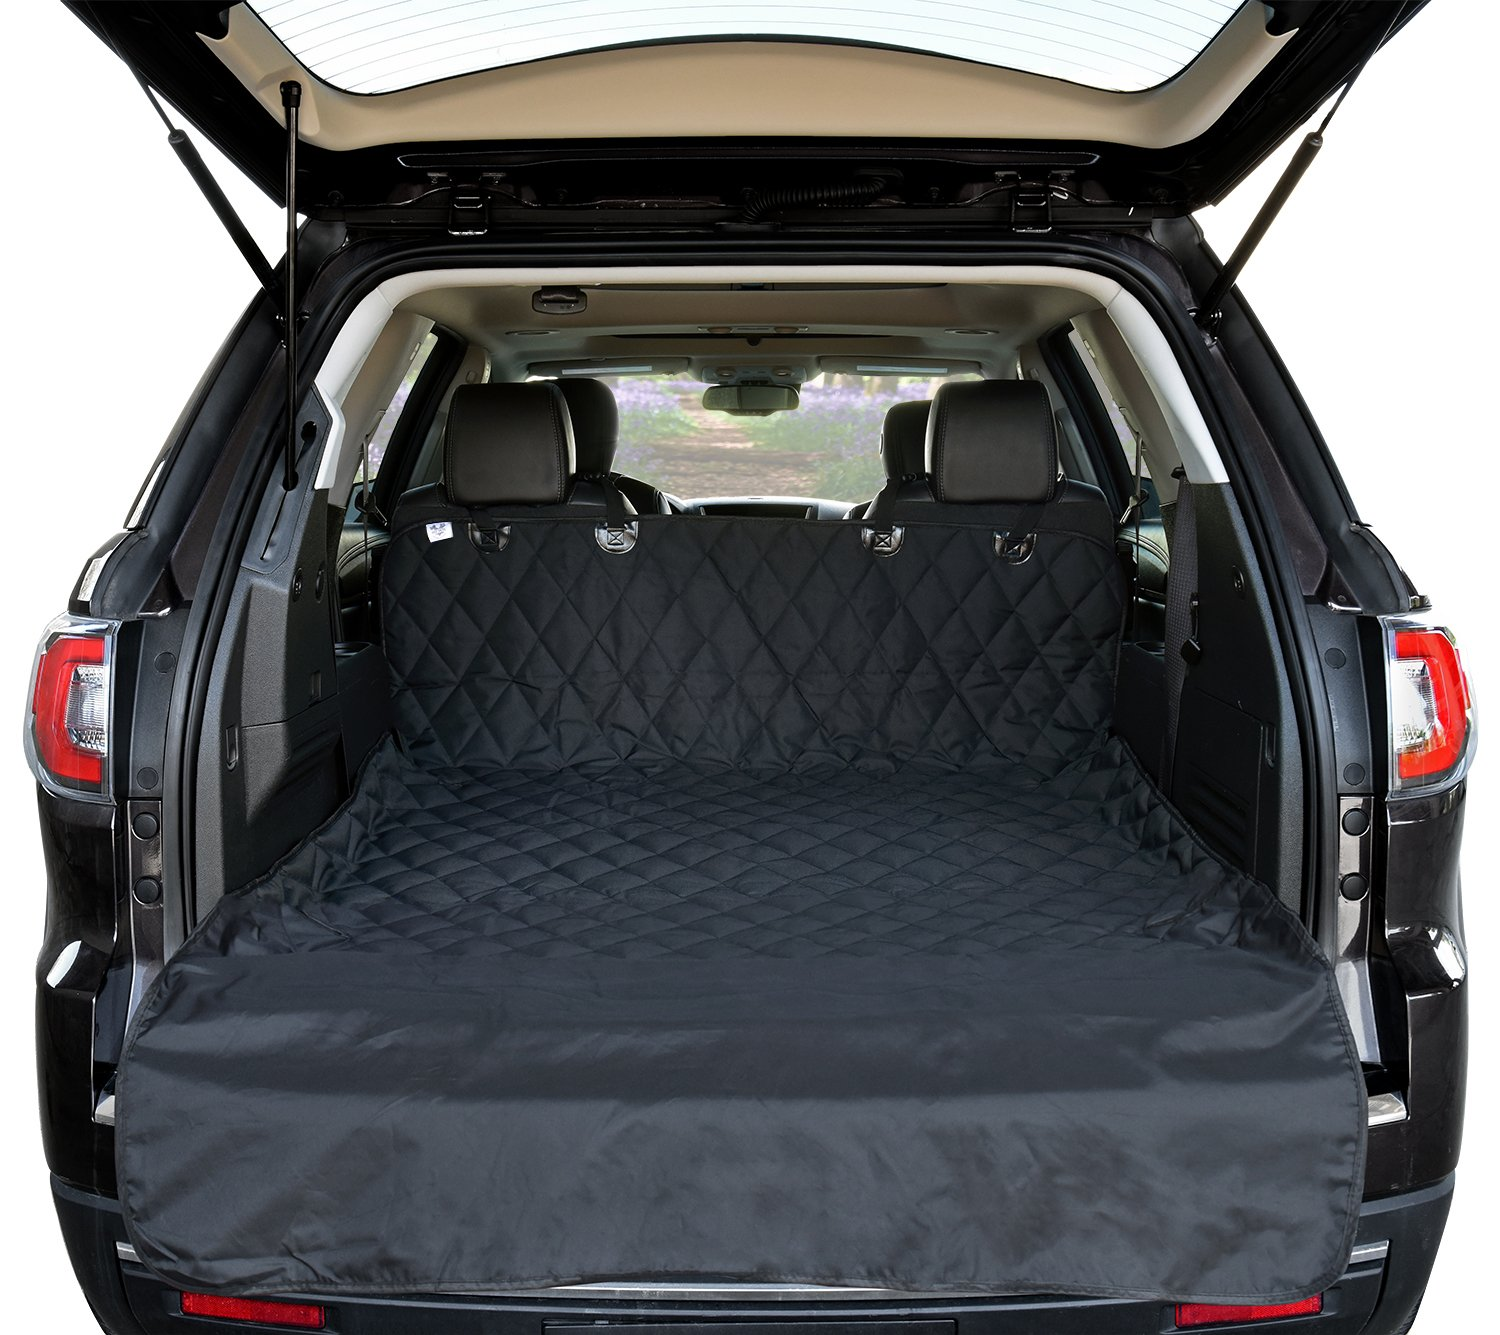 Cargo Liner Cover For SUVs and Cars Waterproof